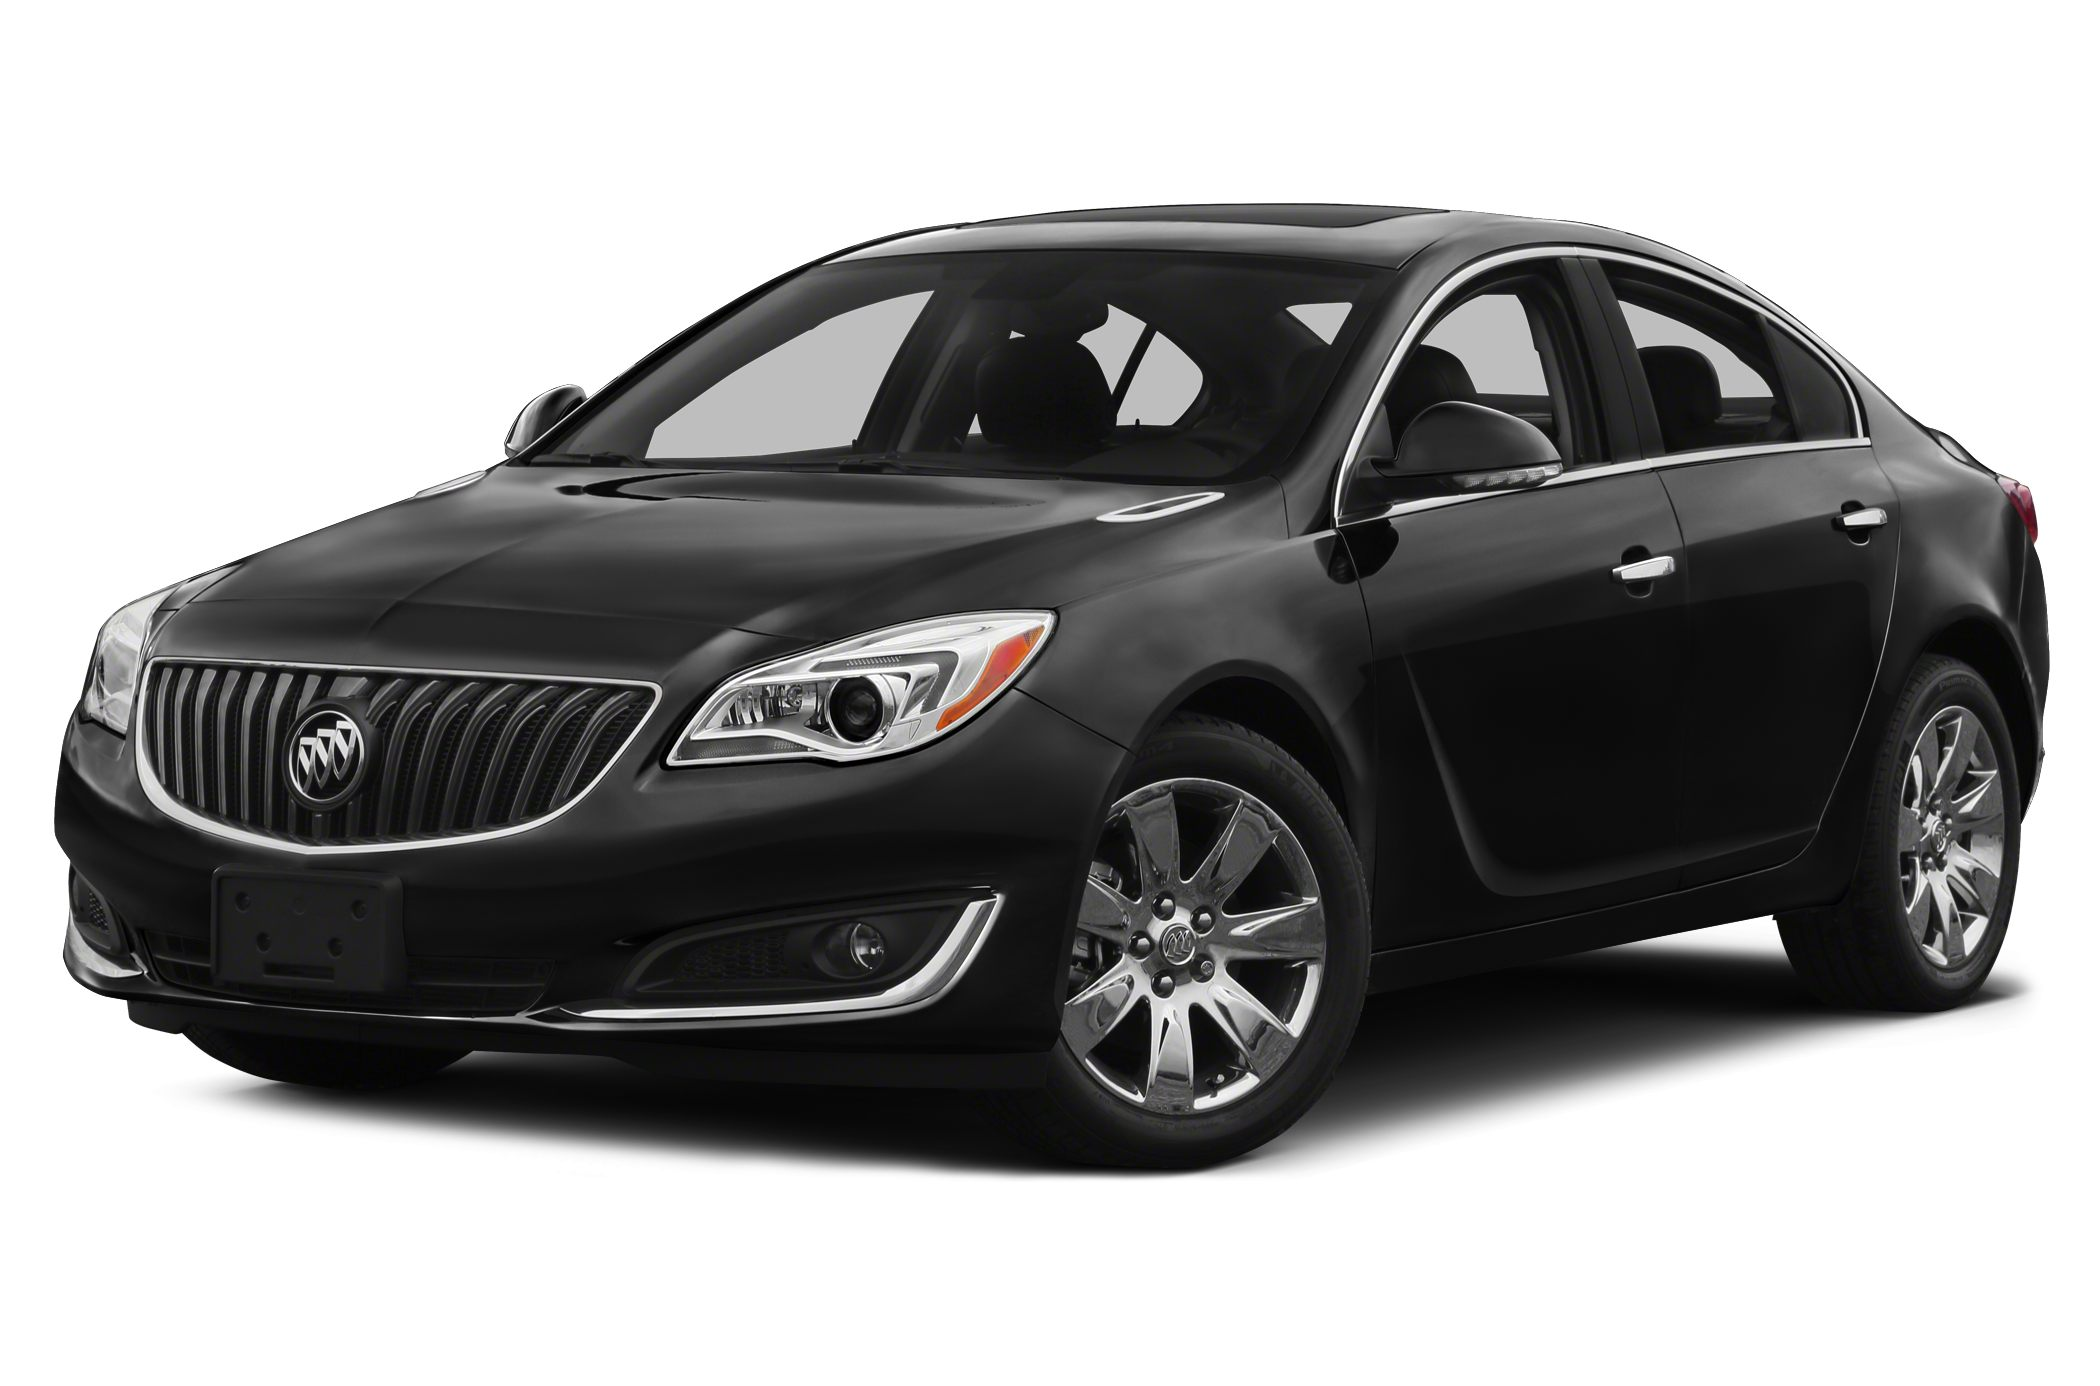 2014 Buick Regal Turbo Premium II Sedan for sale in Rutland for $39,585 with 0 miles.